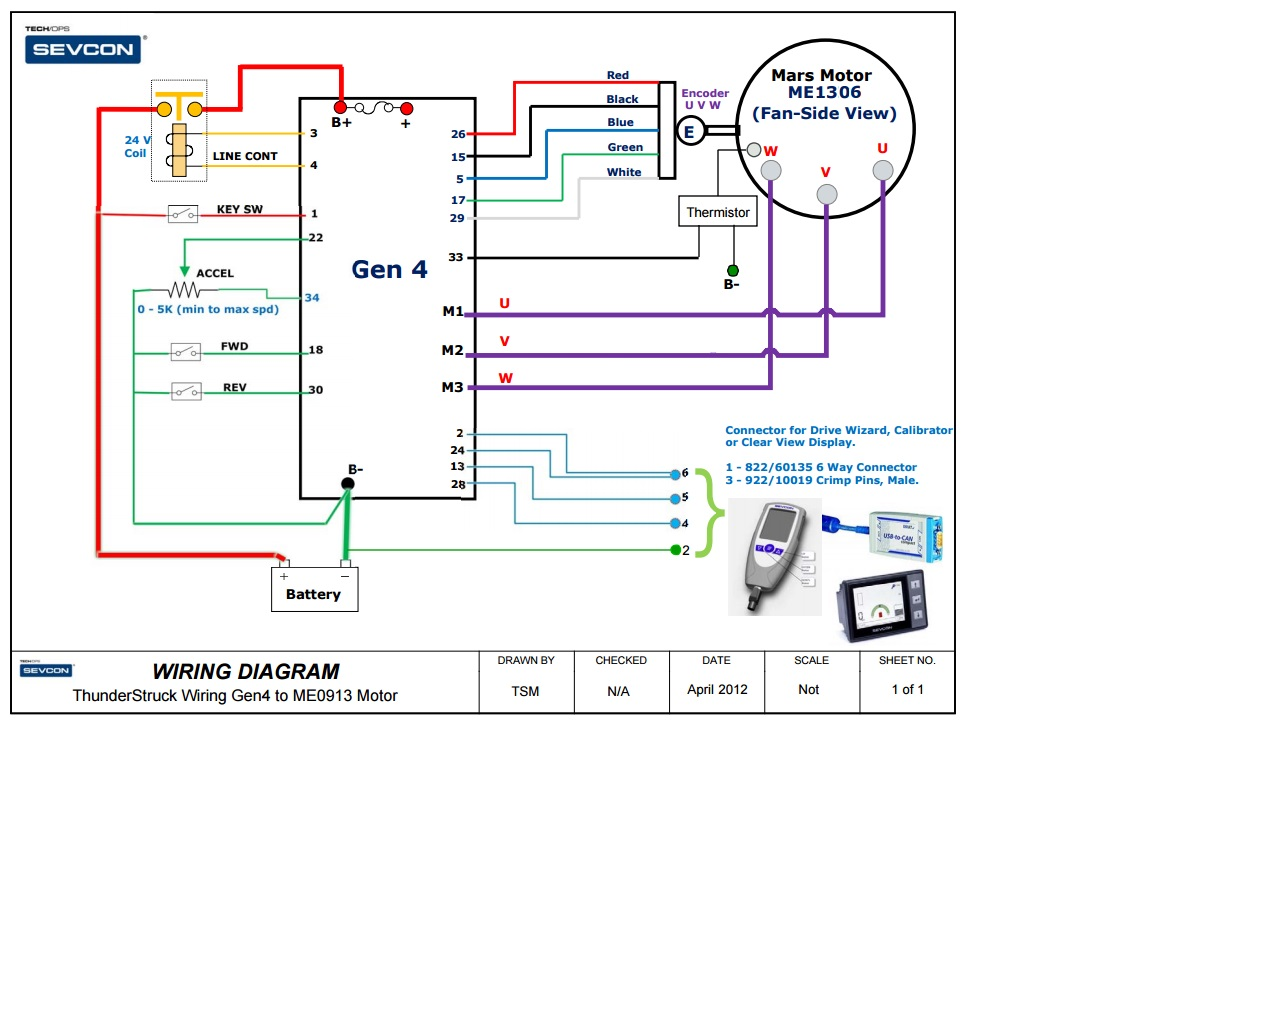 medium resolution of ev wiring diagram ac dc diagram data schemathunderstruck motors manuals u0026 data sheets ev wiring